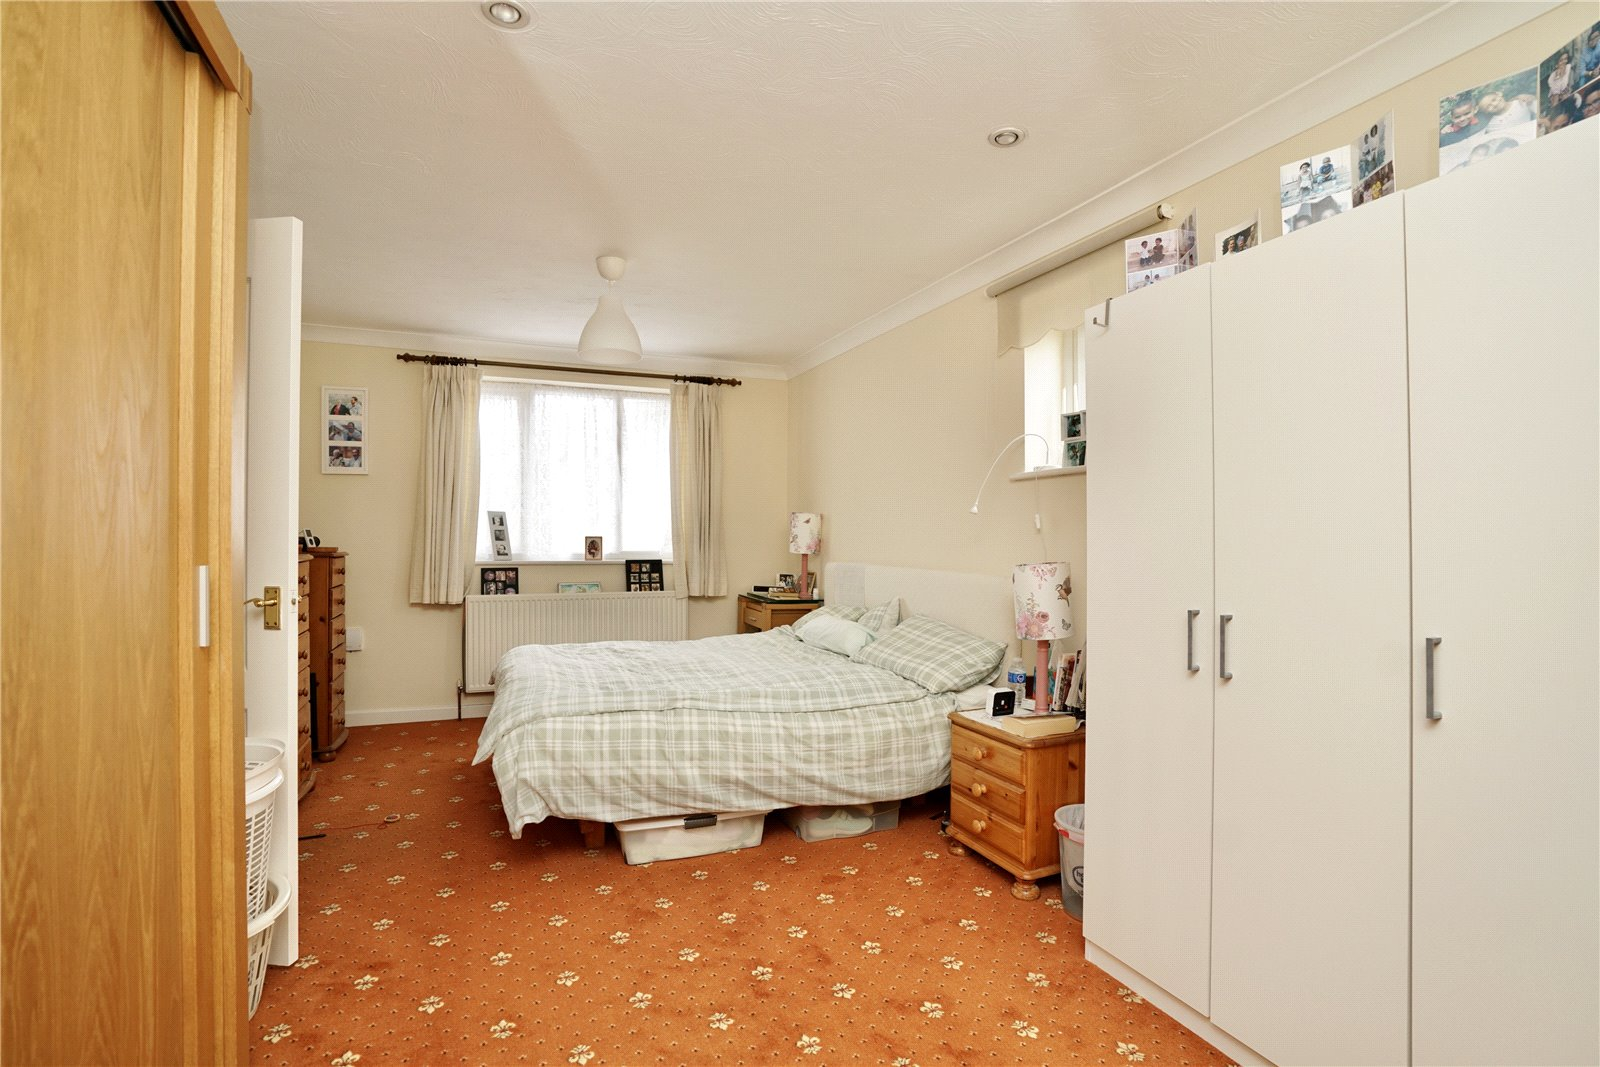 3 bed house for sale in Cunningham Way, Eaton Socon 9